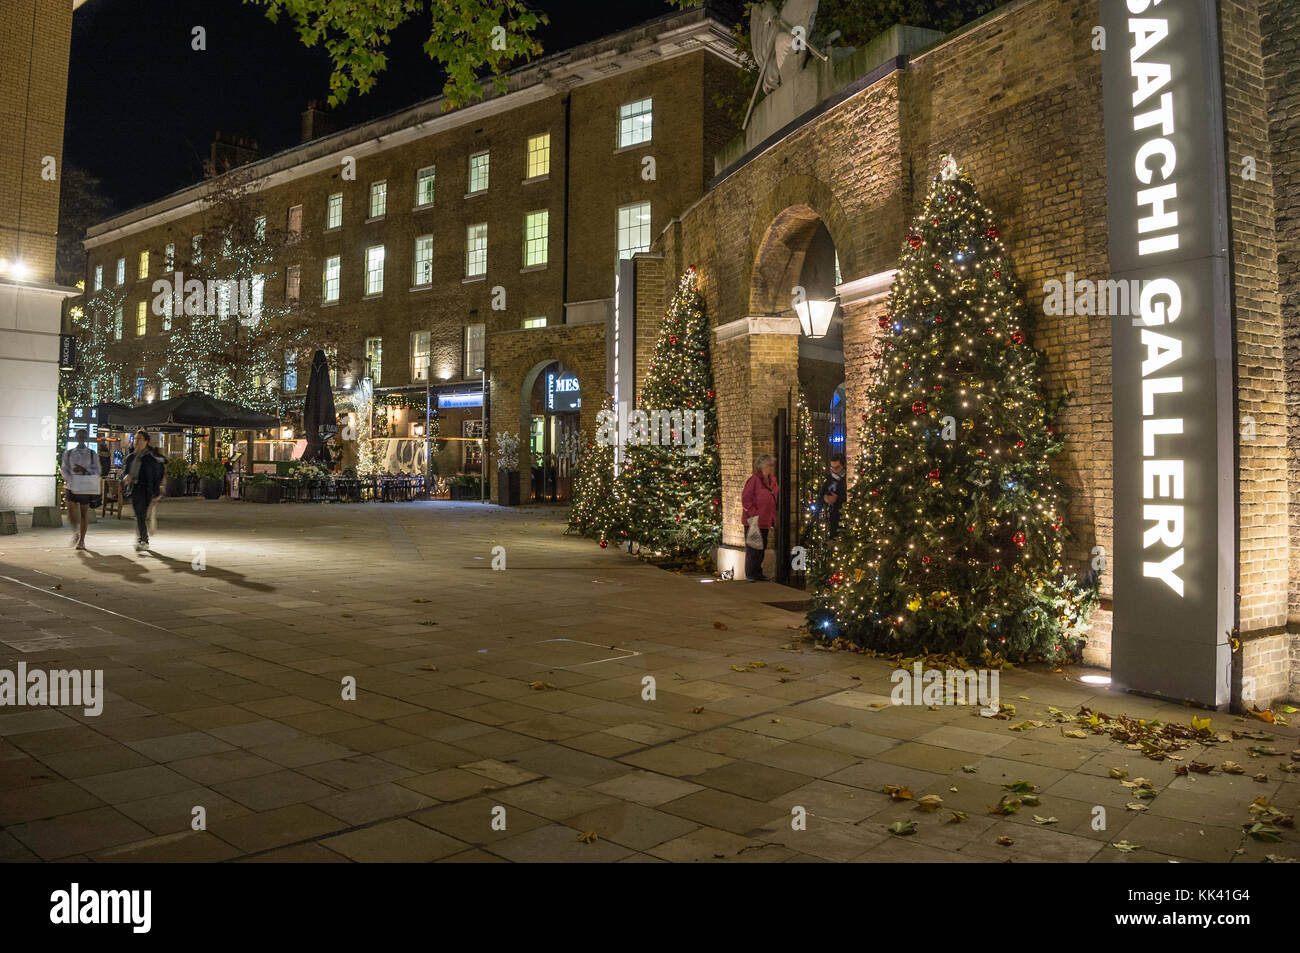 entrance to the saatchi gallery with christmas trees and lights